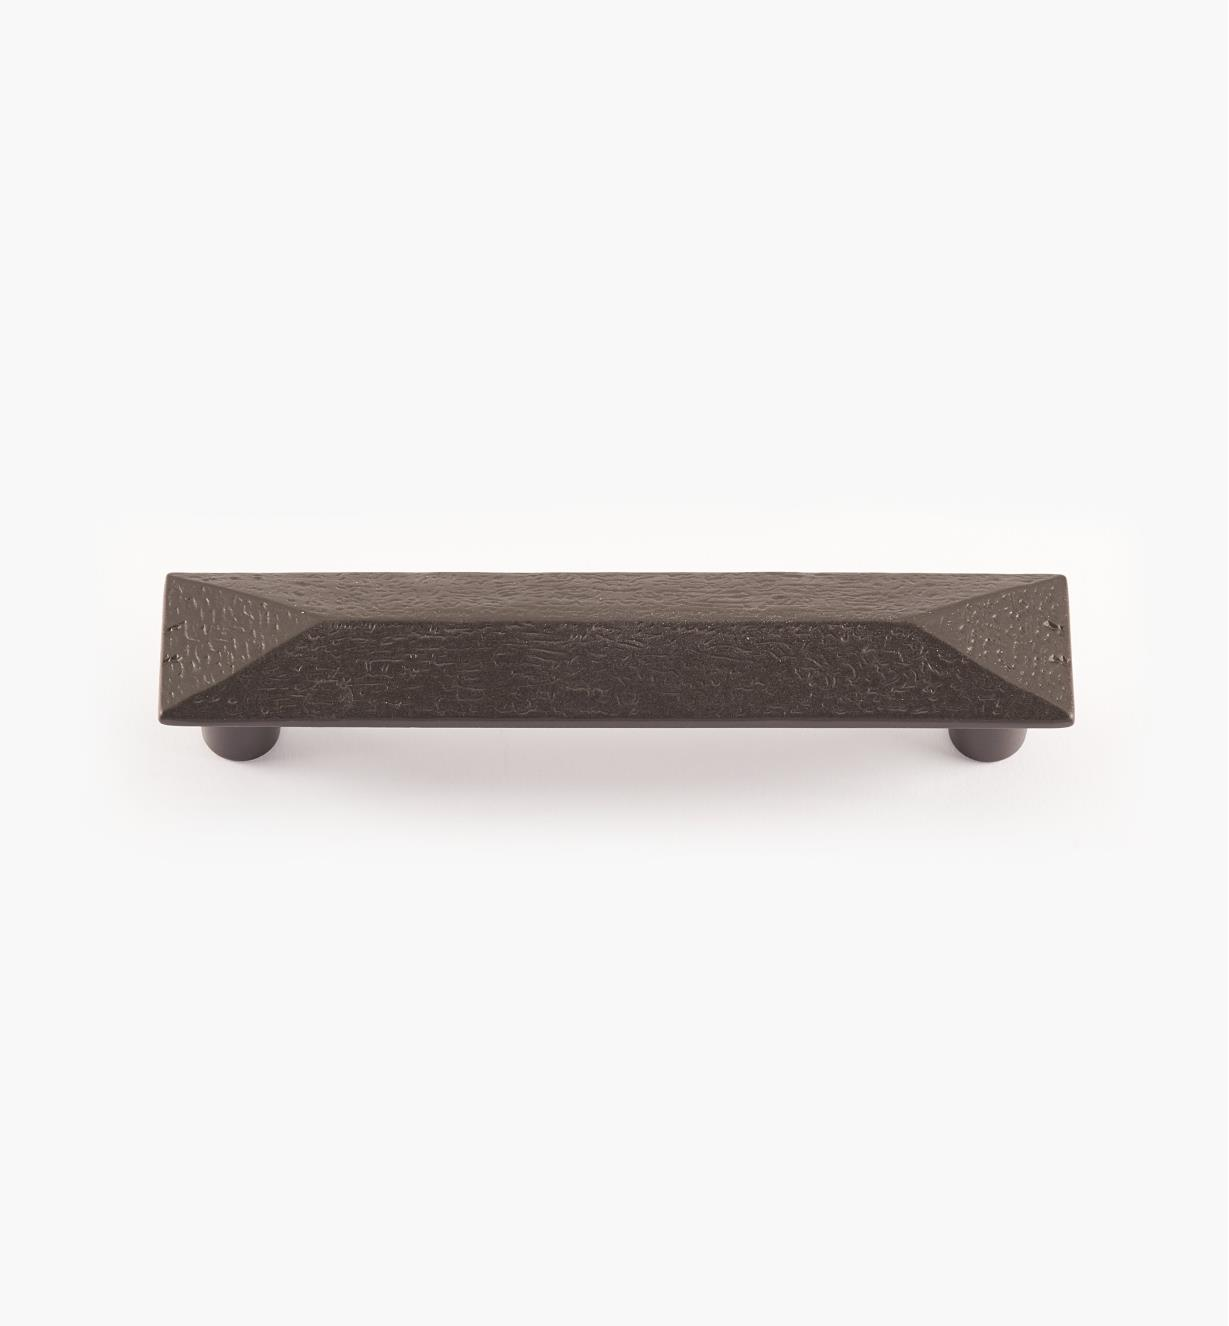 02A4451 - 96mm Oil-Rubbed Bronze Handle